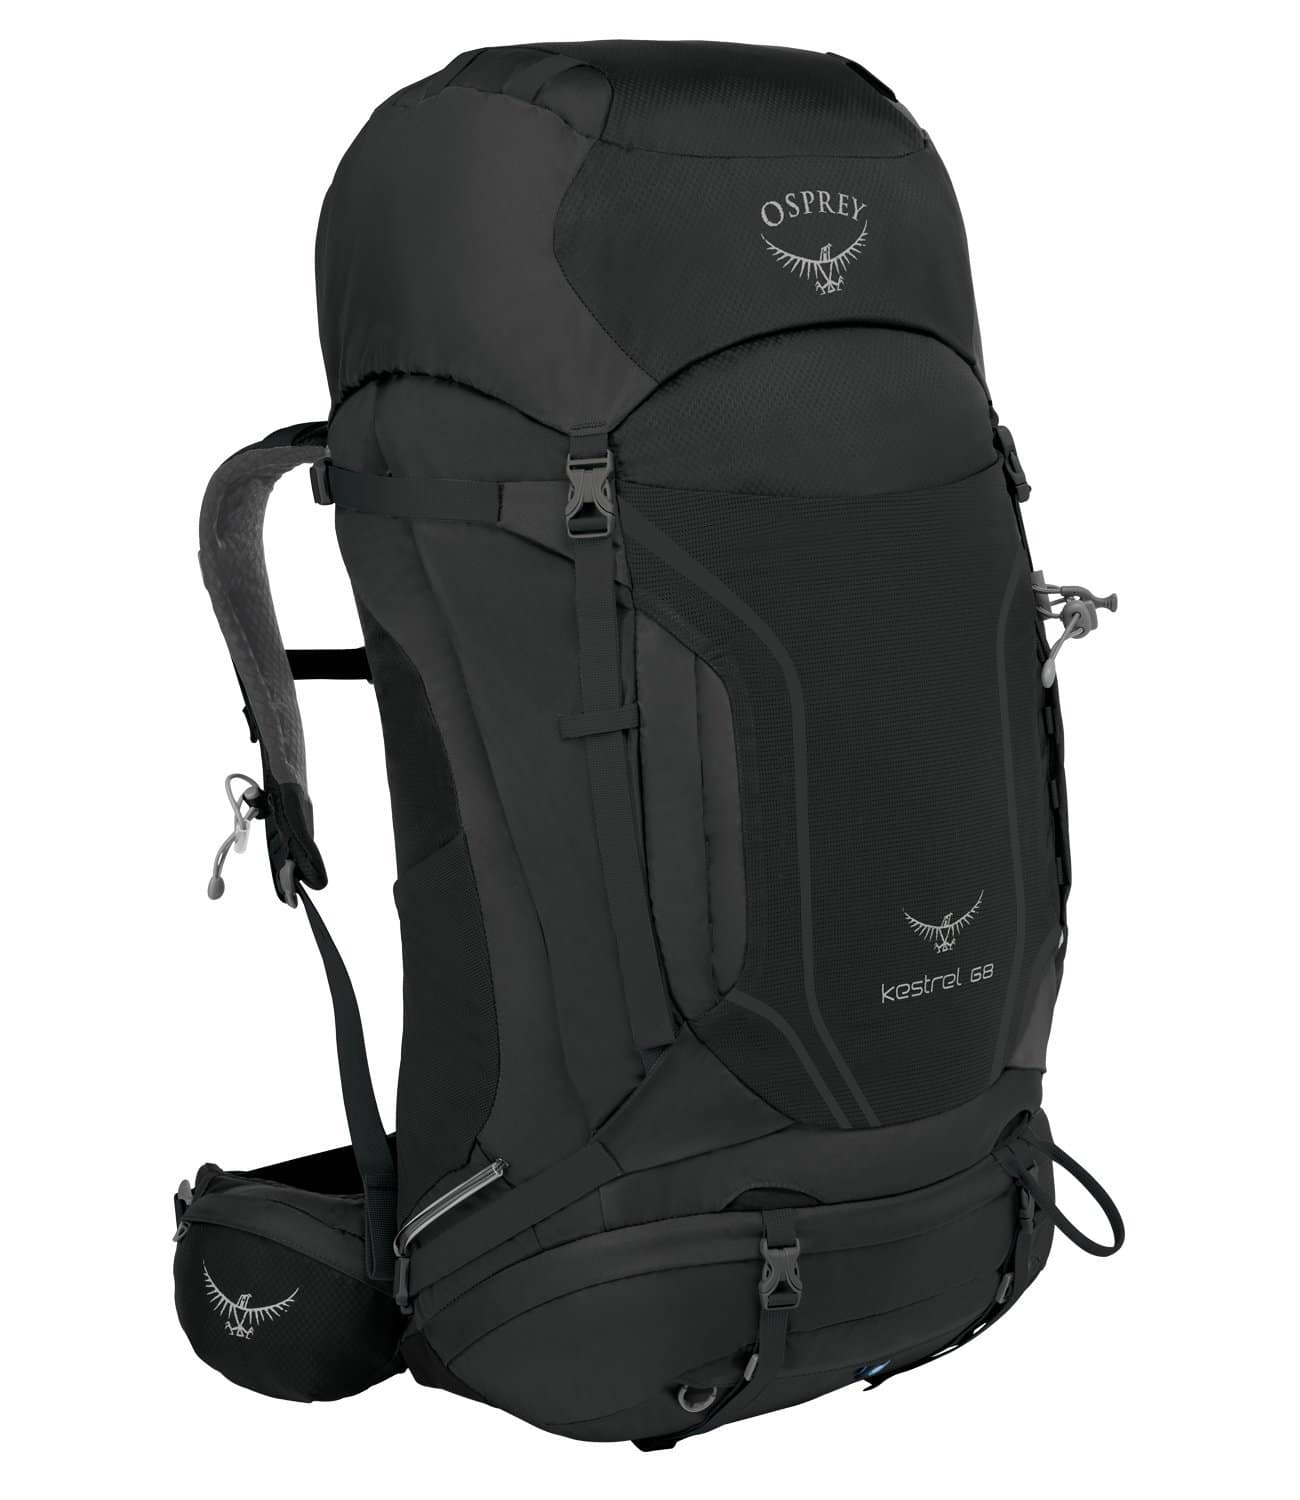 Osprey Kestrel 68 Hiking Backpack